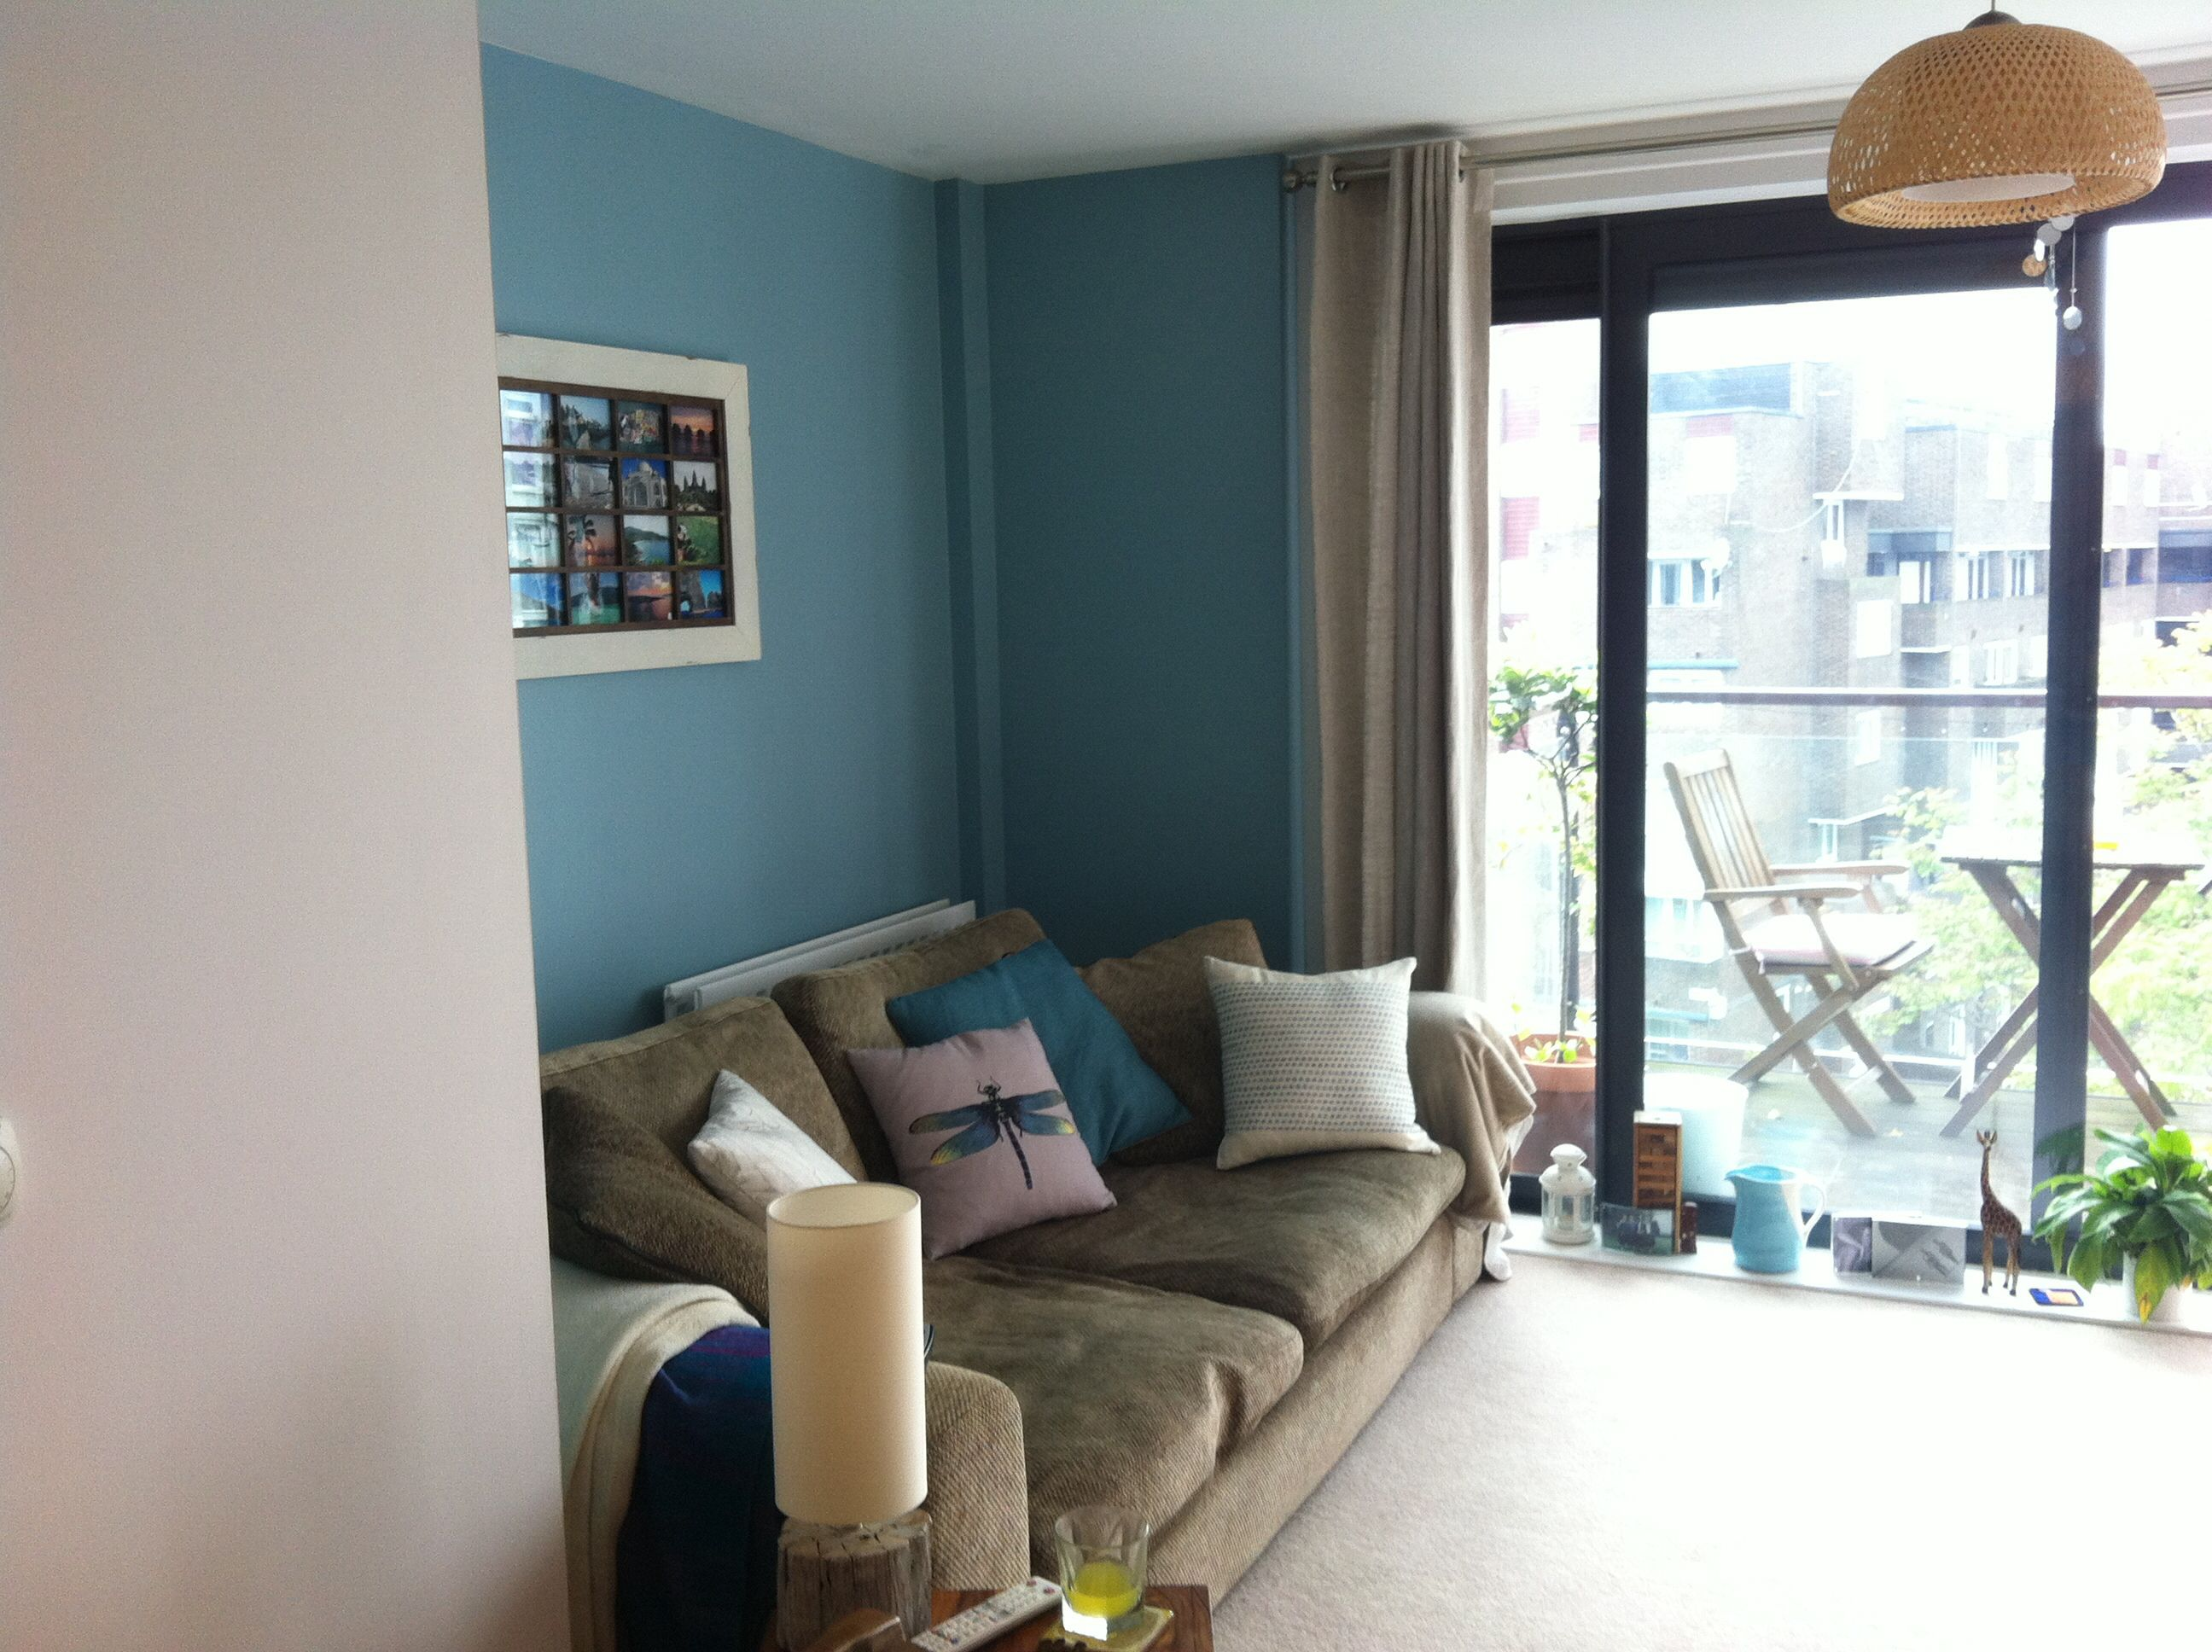 Dulux blue reflection living room pinterest living for Dulux paint bedroom ideas